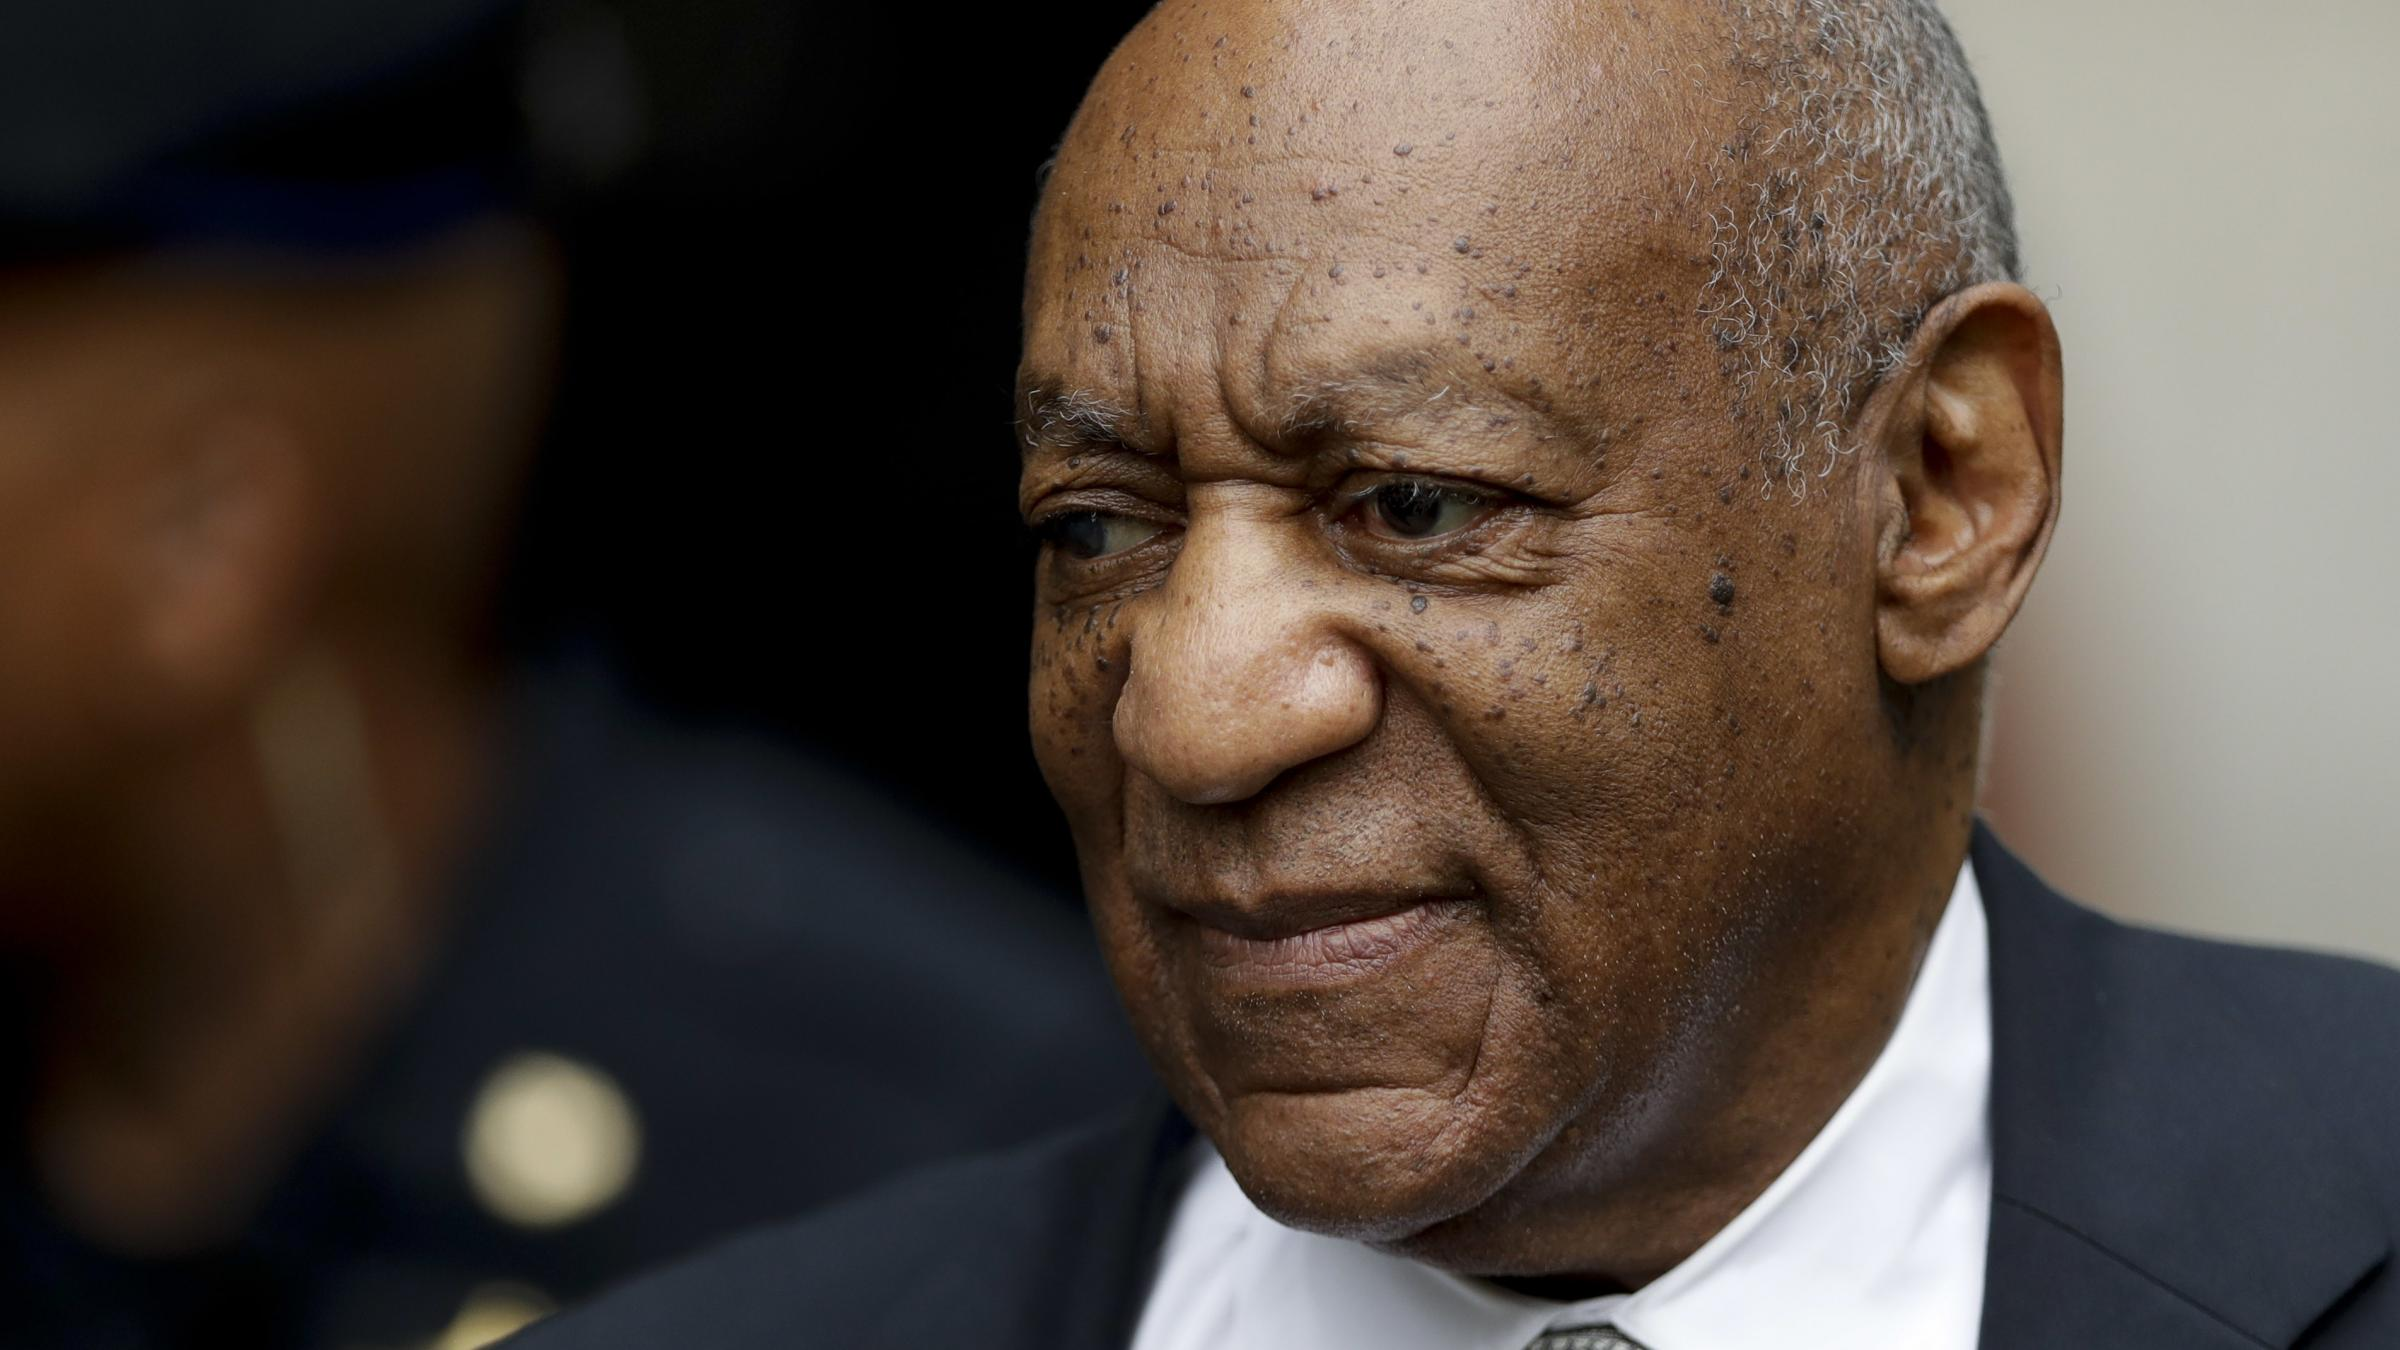 Mistrial declared in Bill Cosby's criminal trial as jury deadlocks